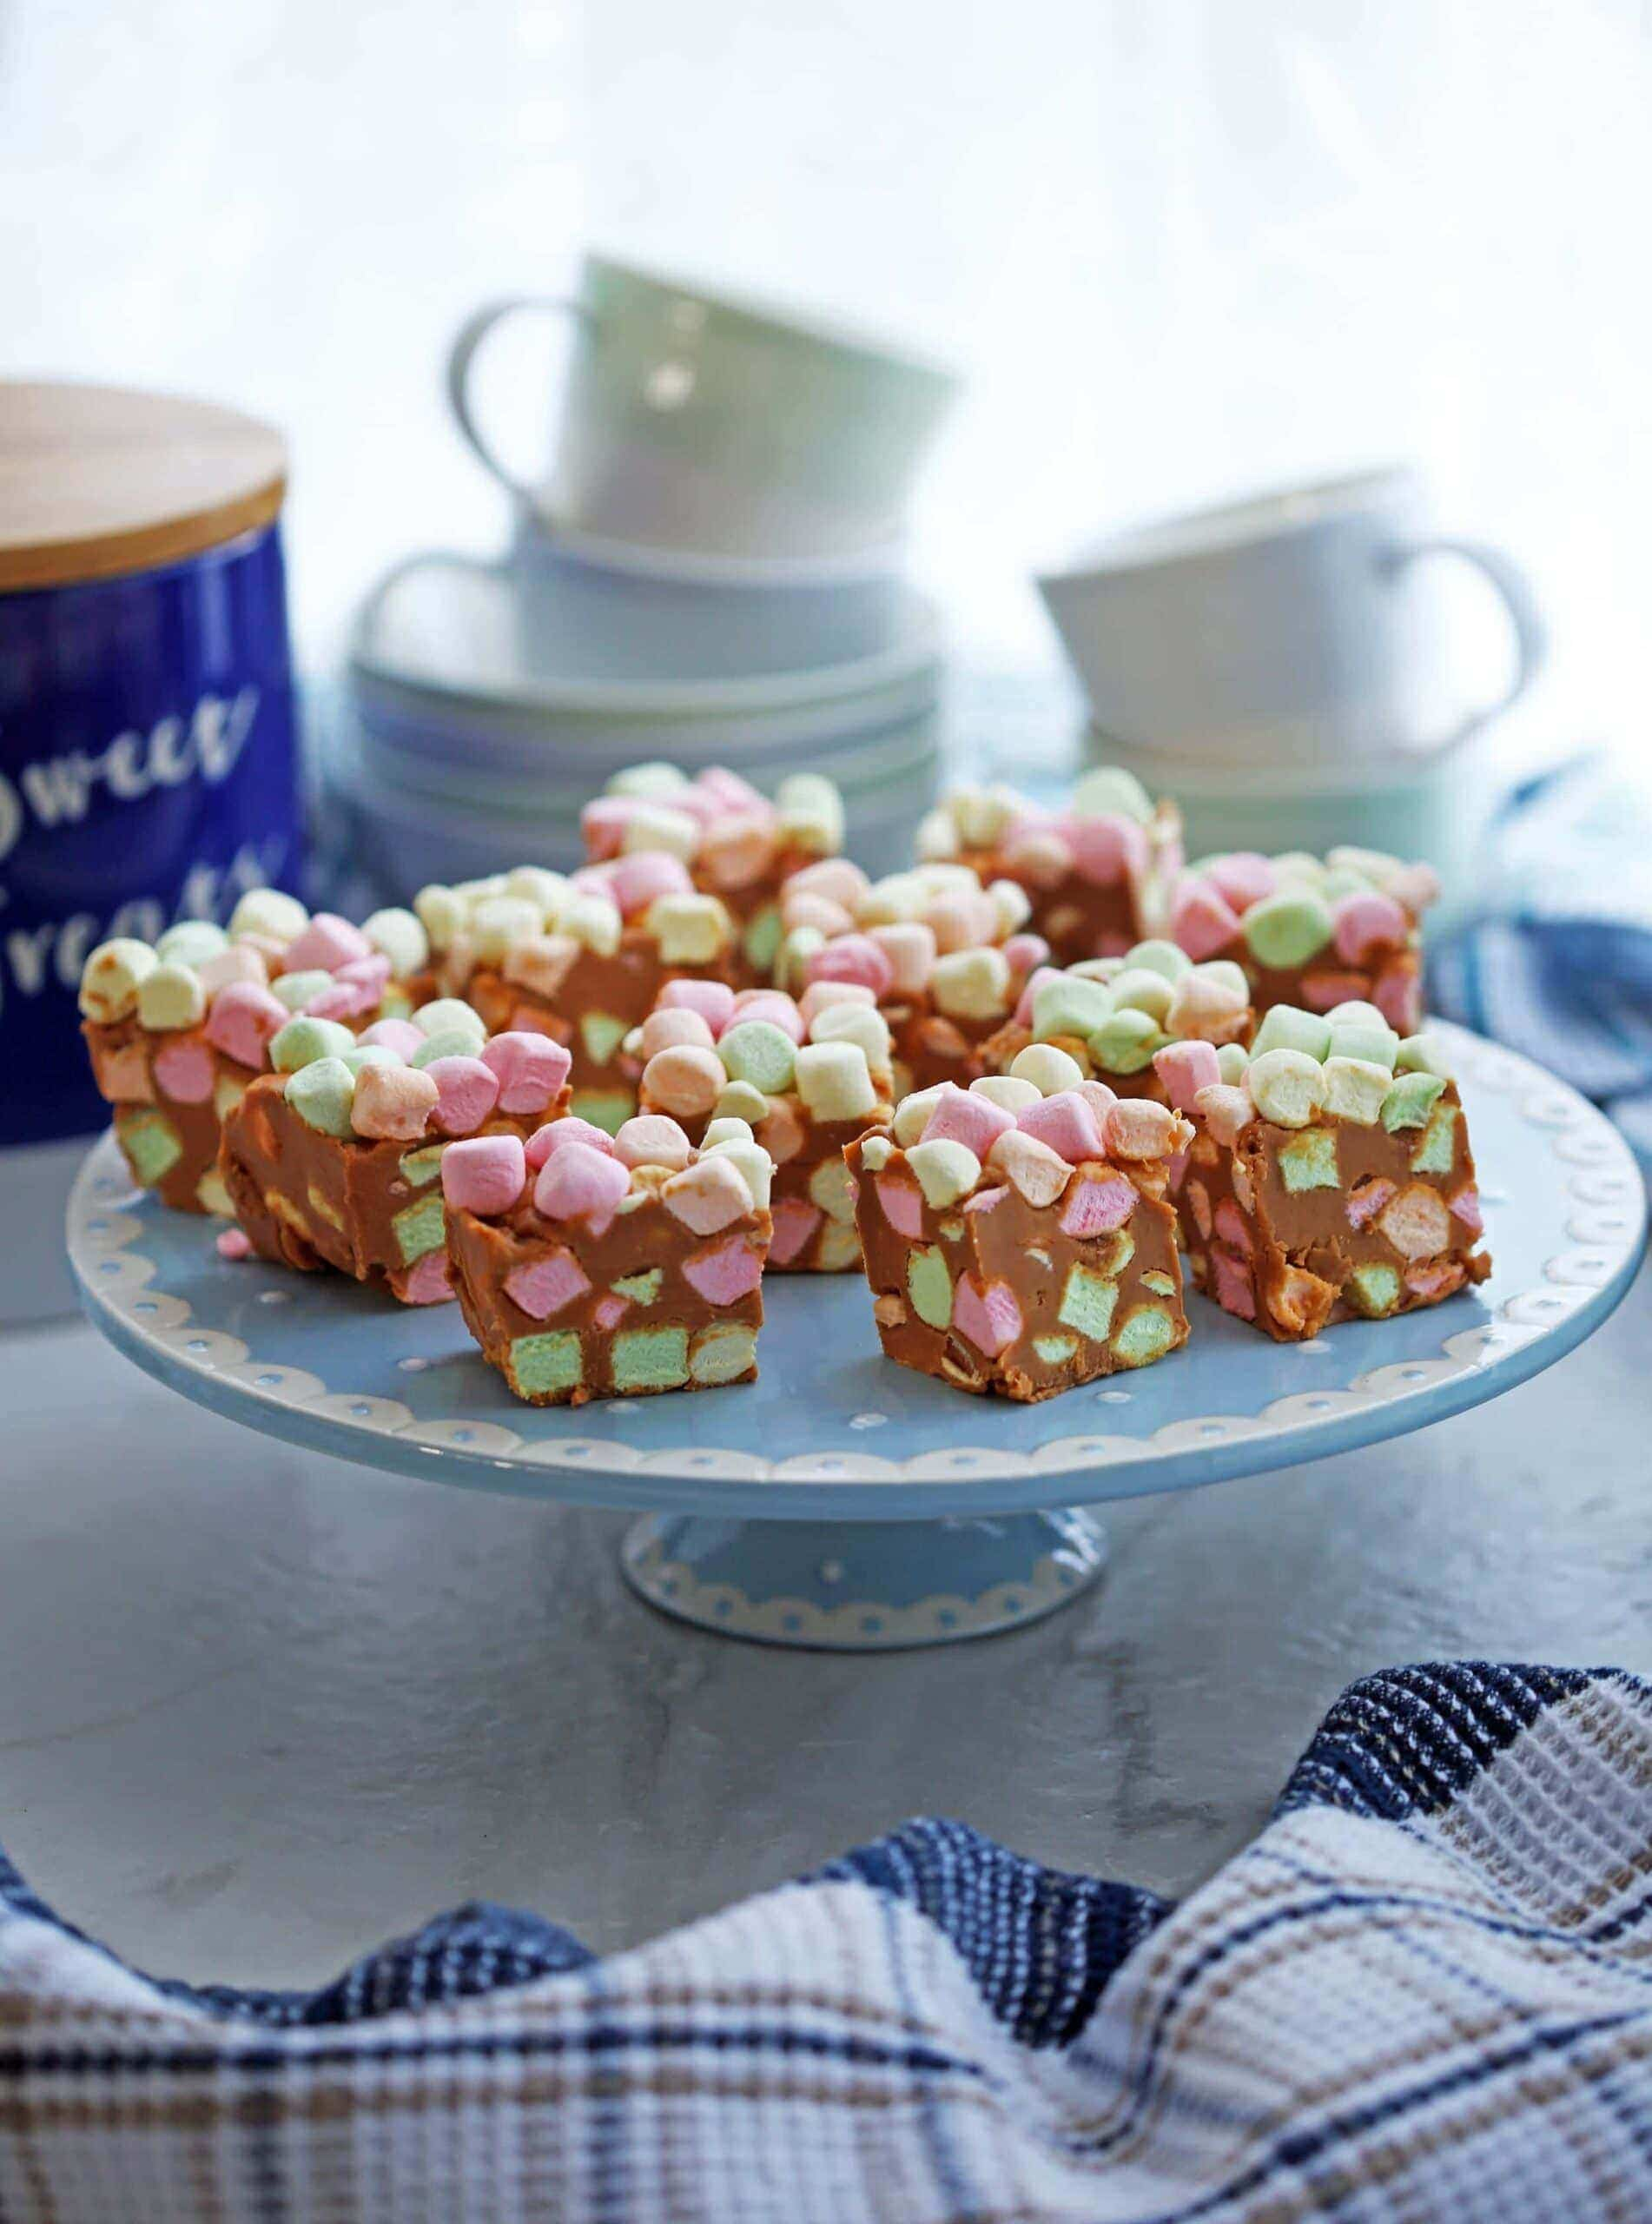 Peanut Butter Butterscotch Marshmallows Bars (aka Confetti Bars)